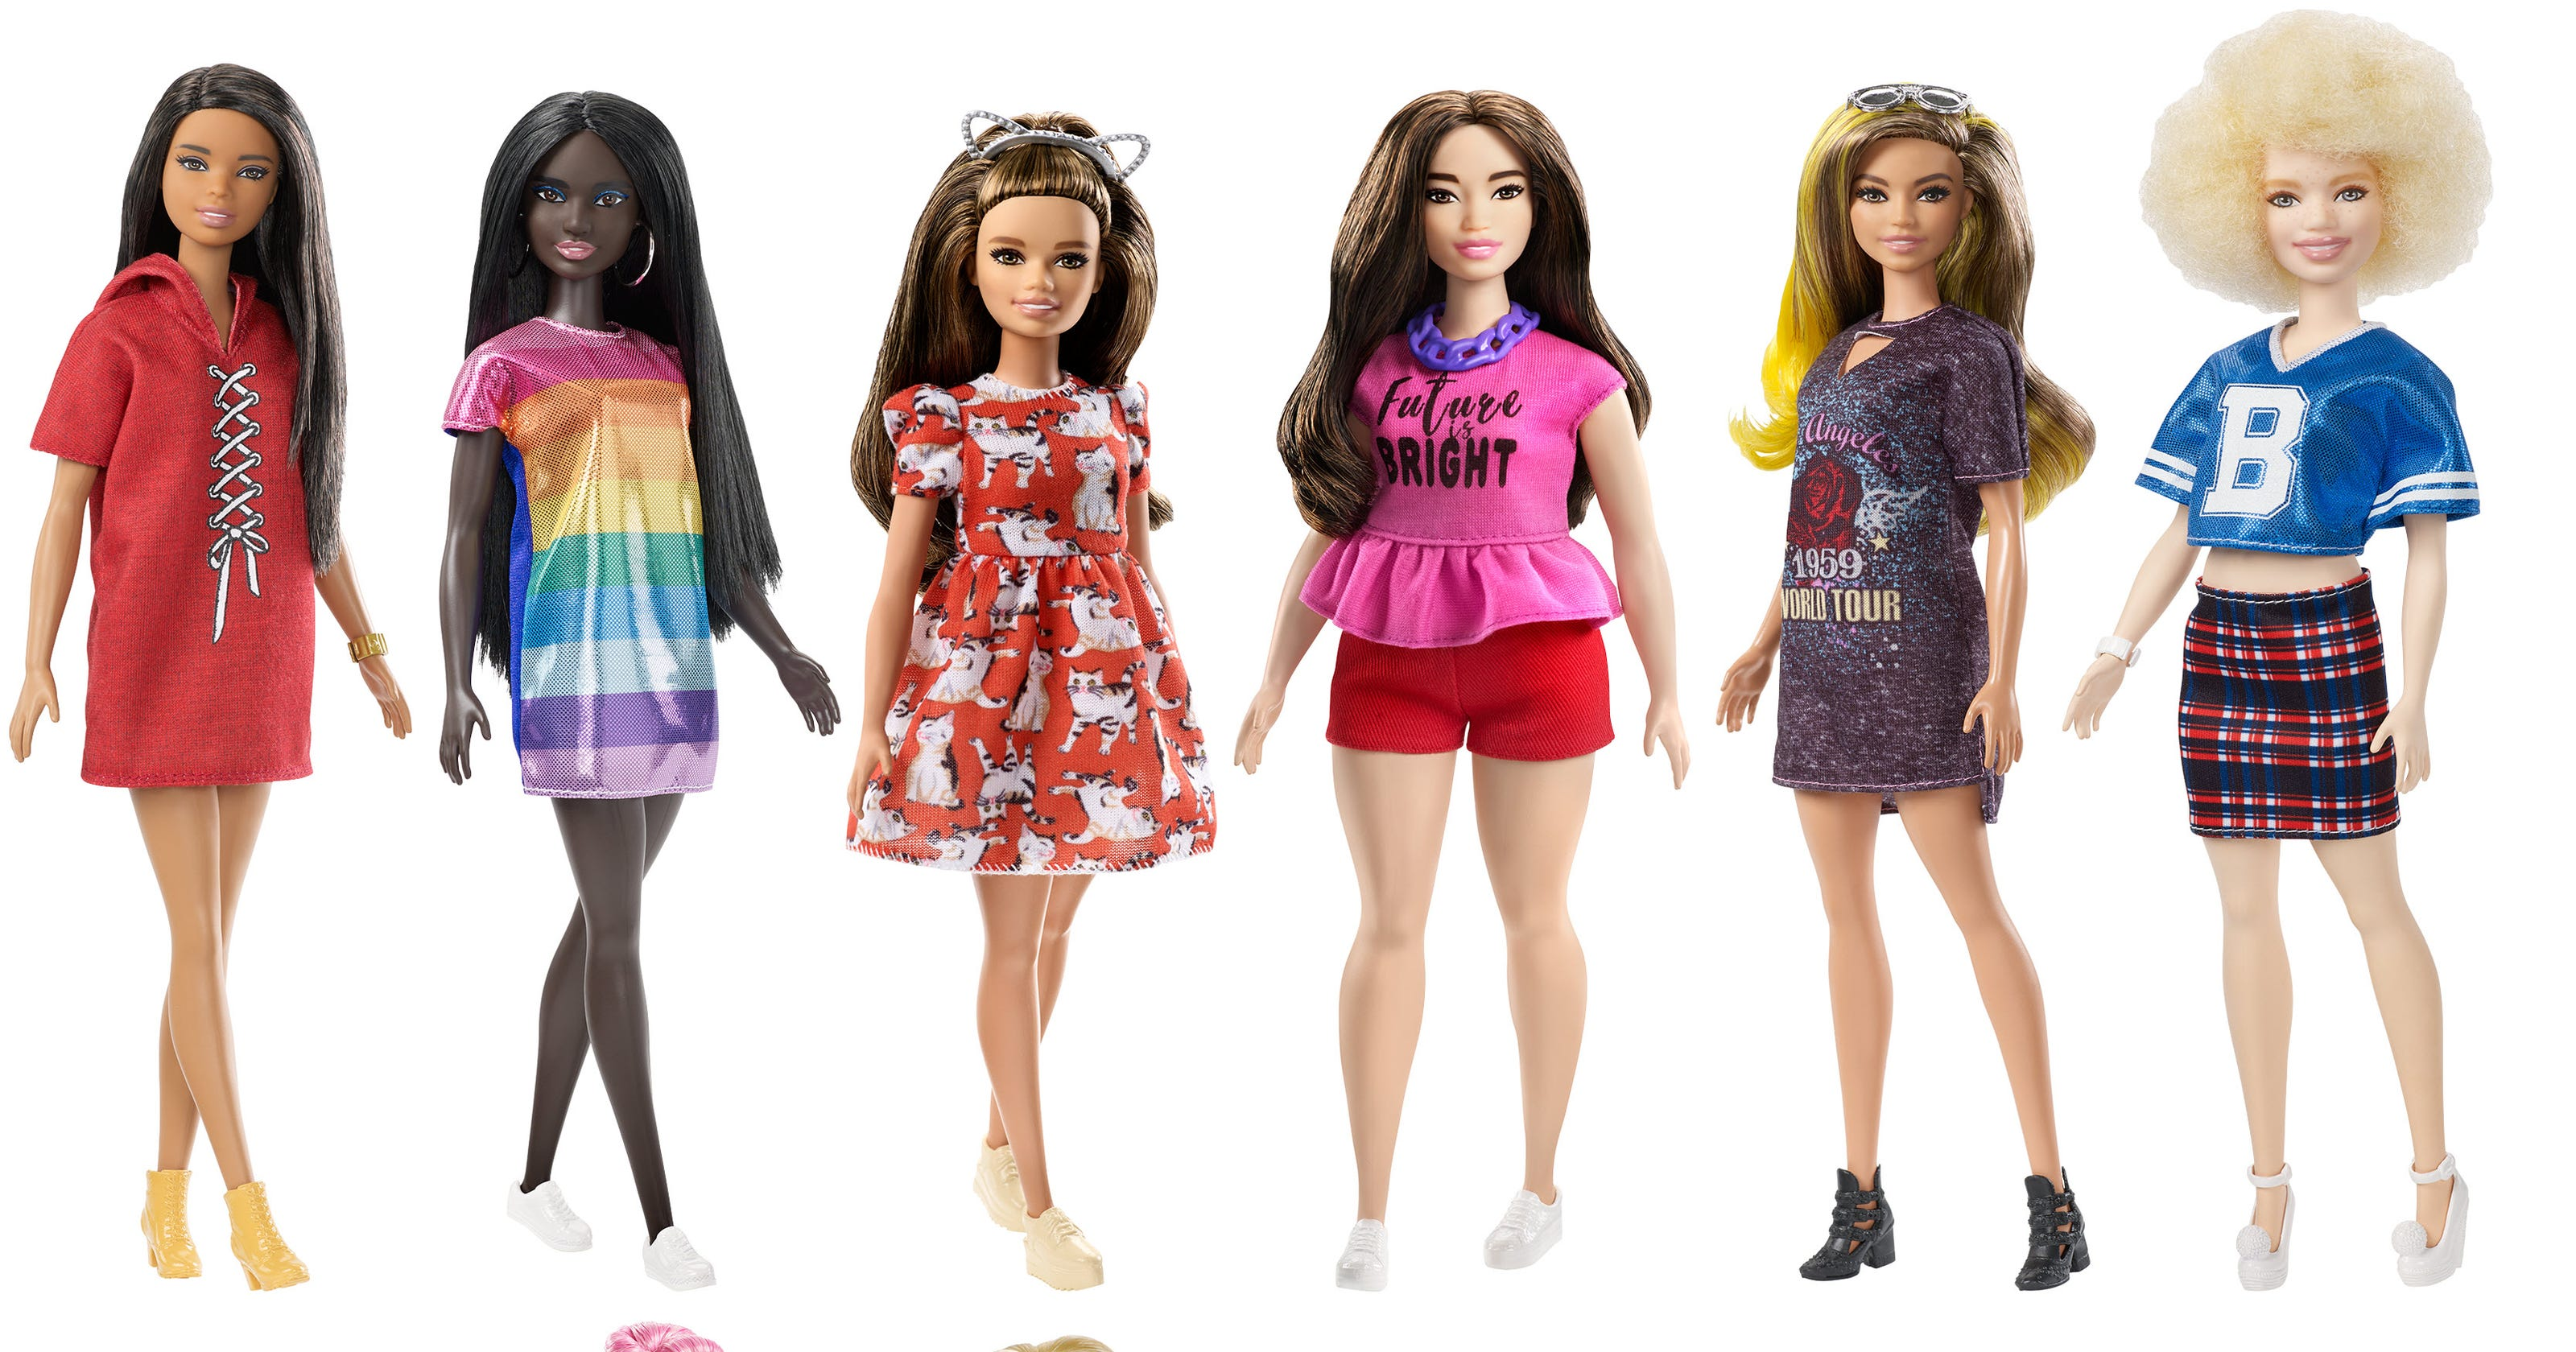 Barbie In 2018 And Beyond: How The Doll Is Getting More